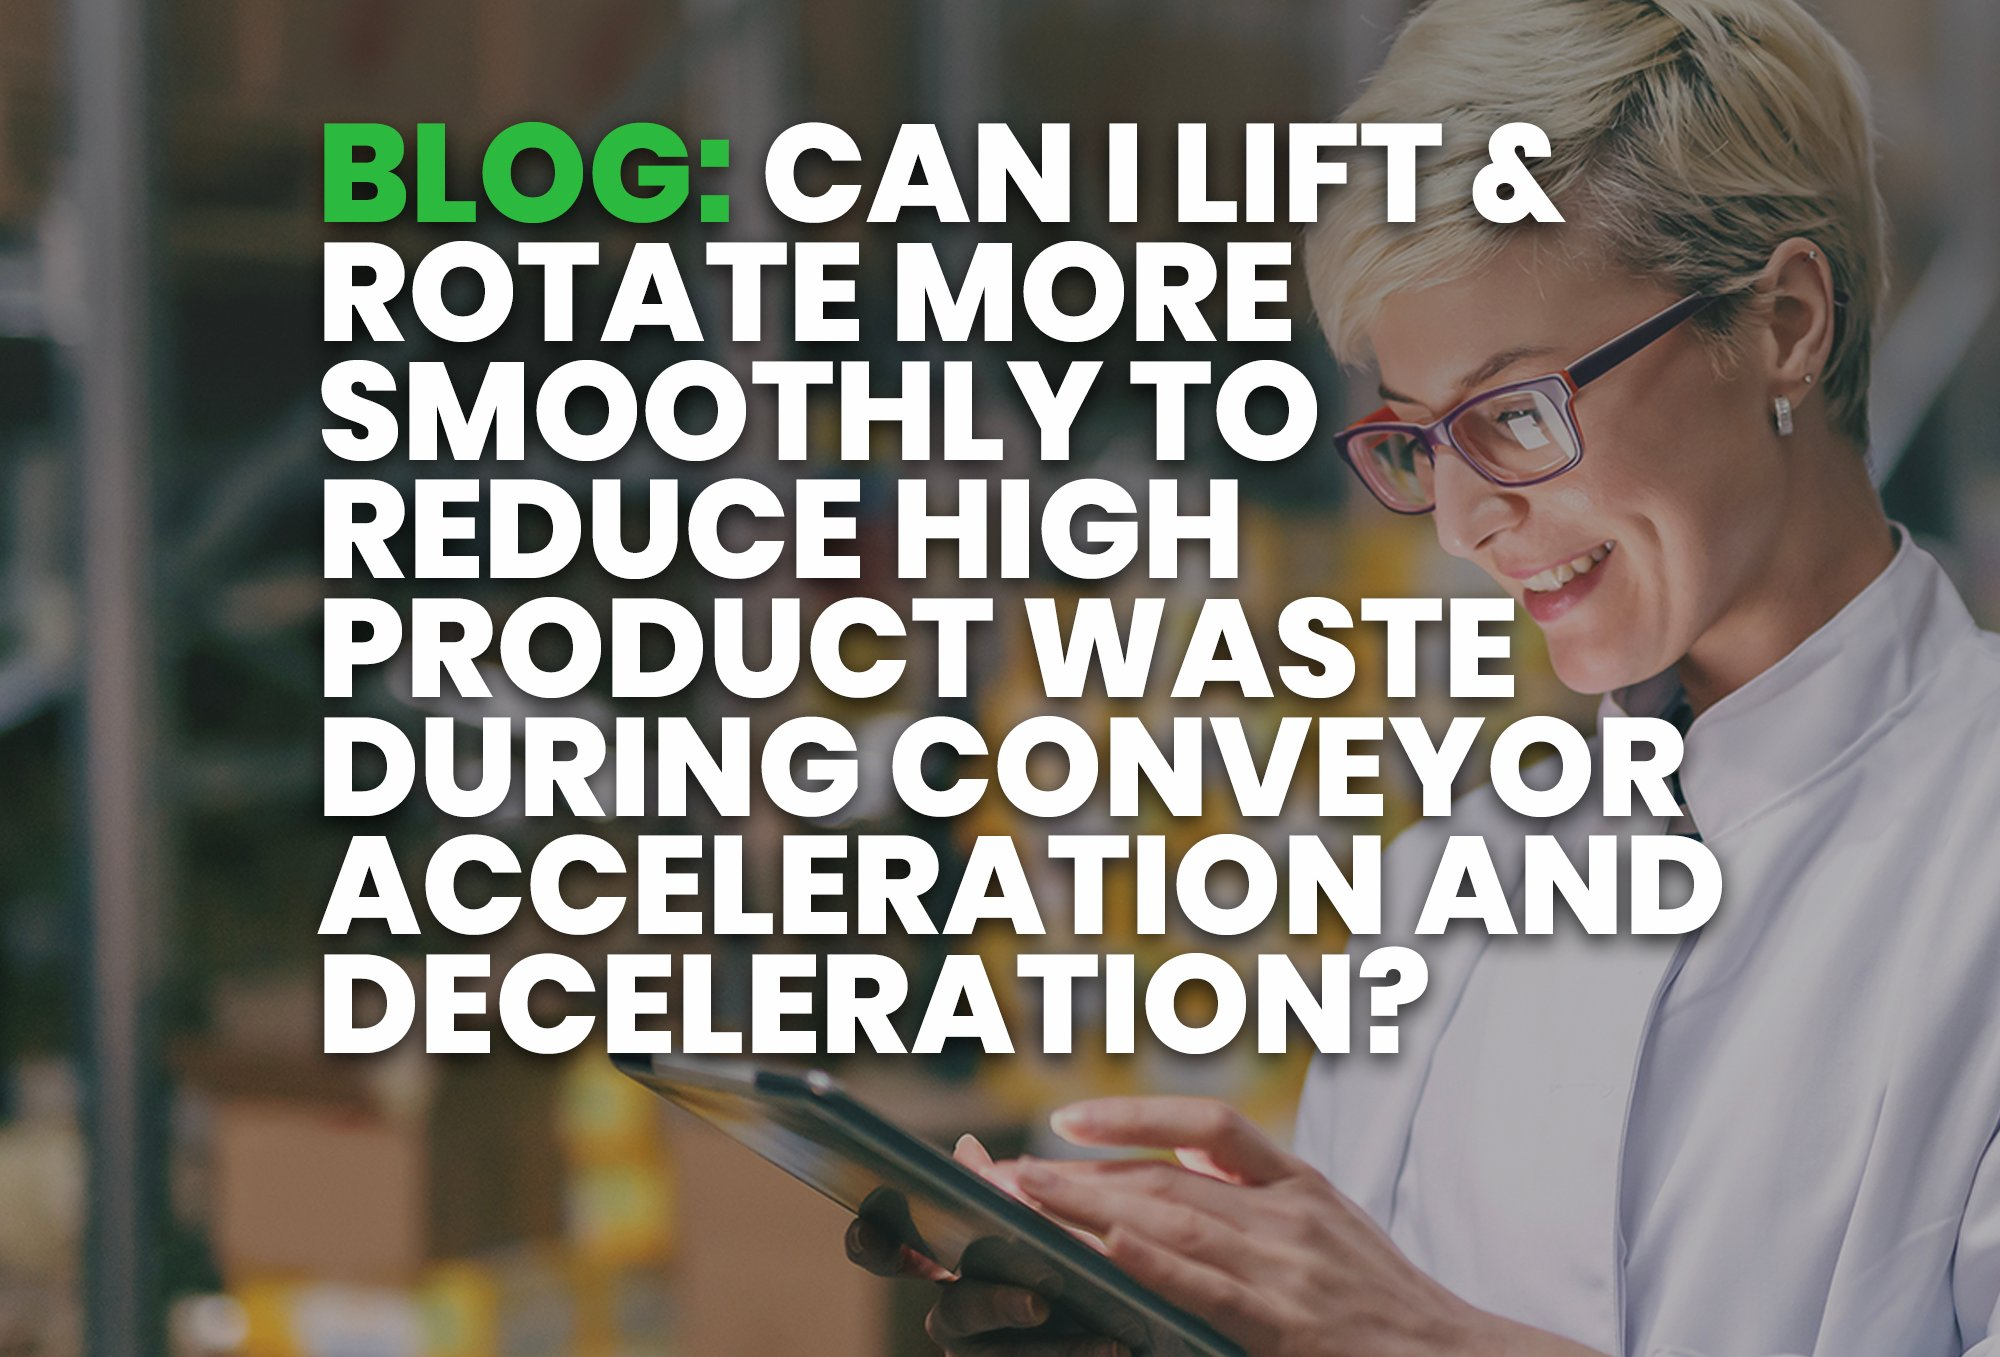 BLOG- Can I Lift & Rotate More Smoothly to Reduce High Product Waste during Conveyor Acceleration and Deceleration?